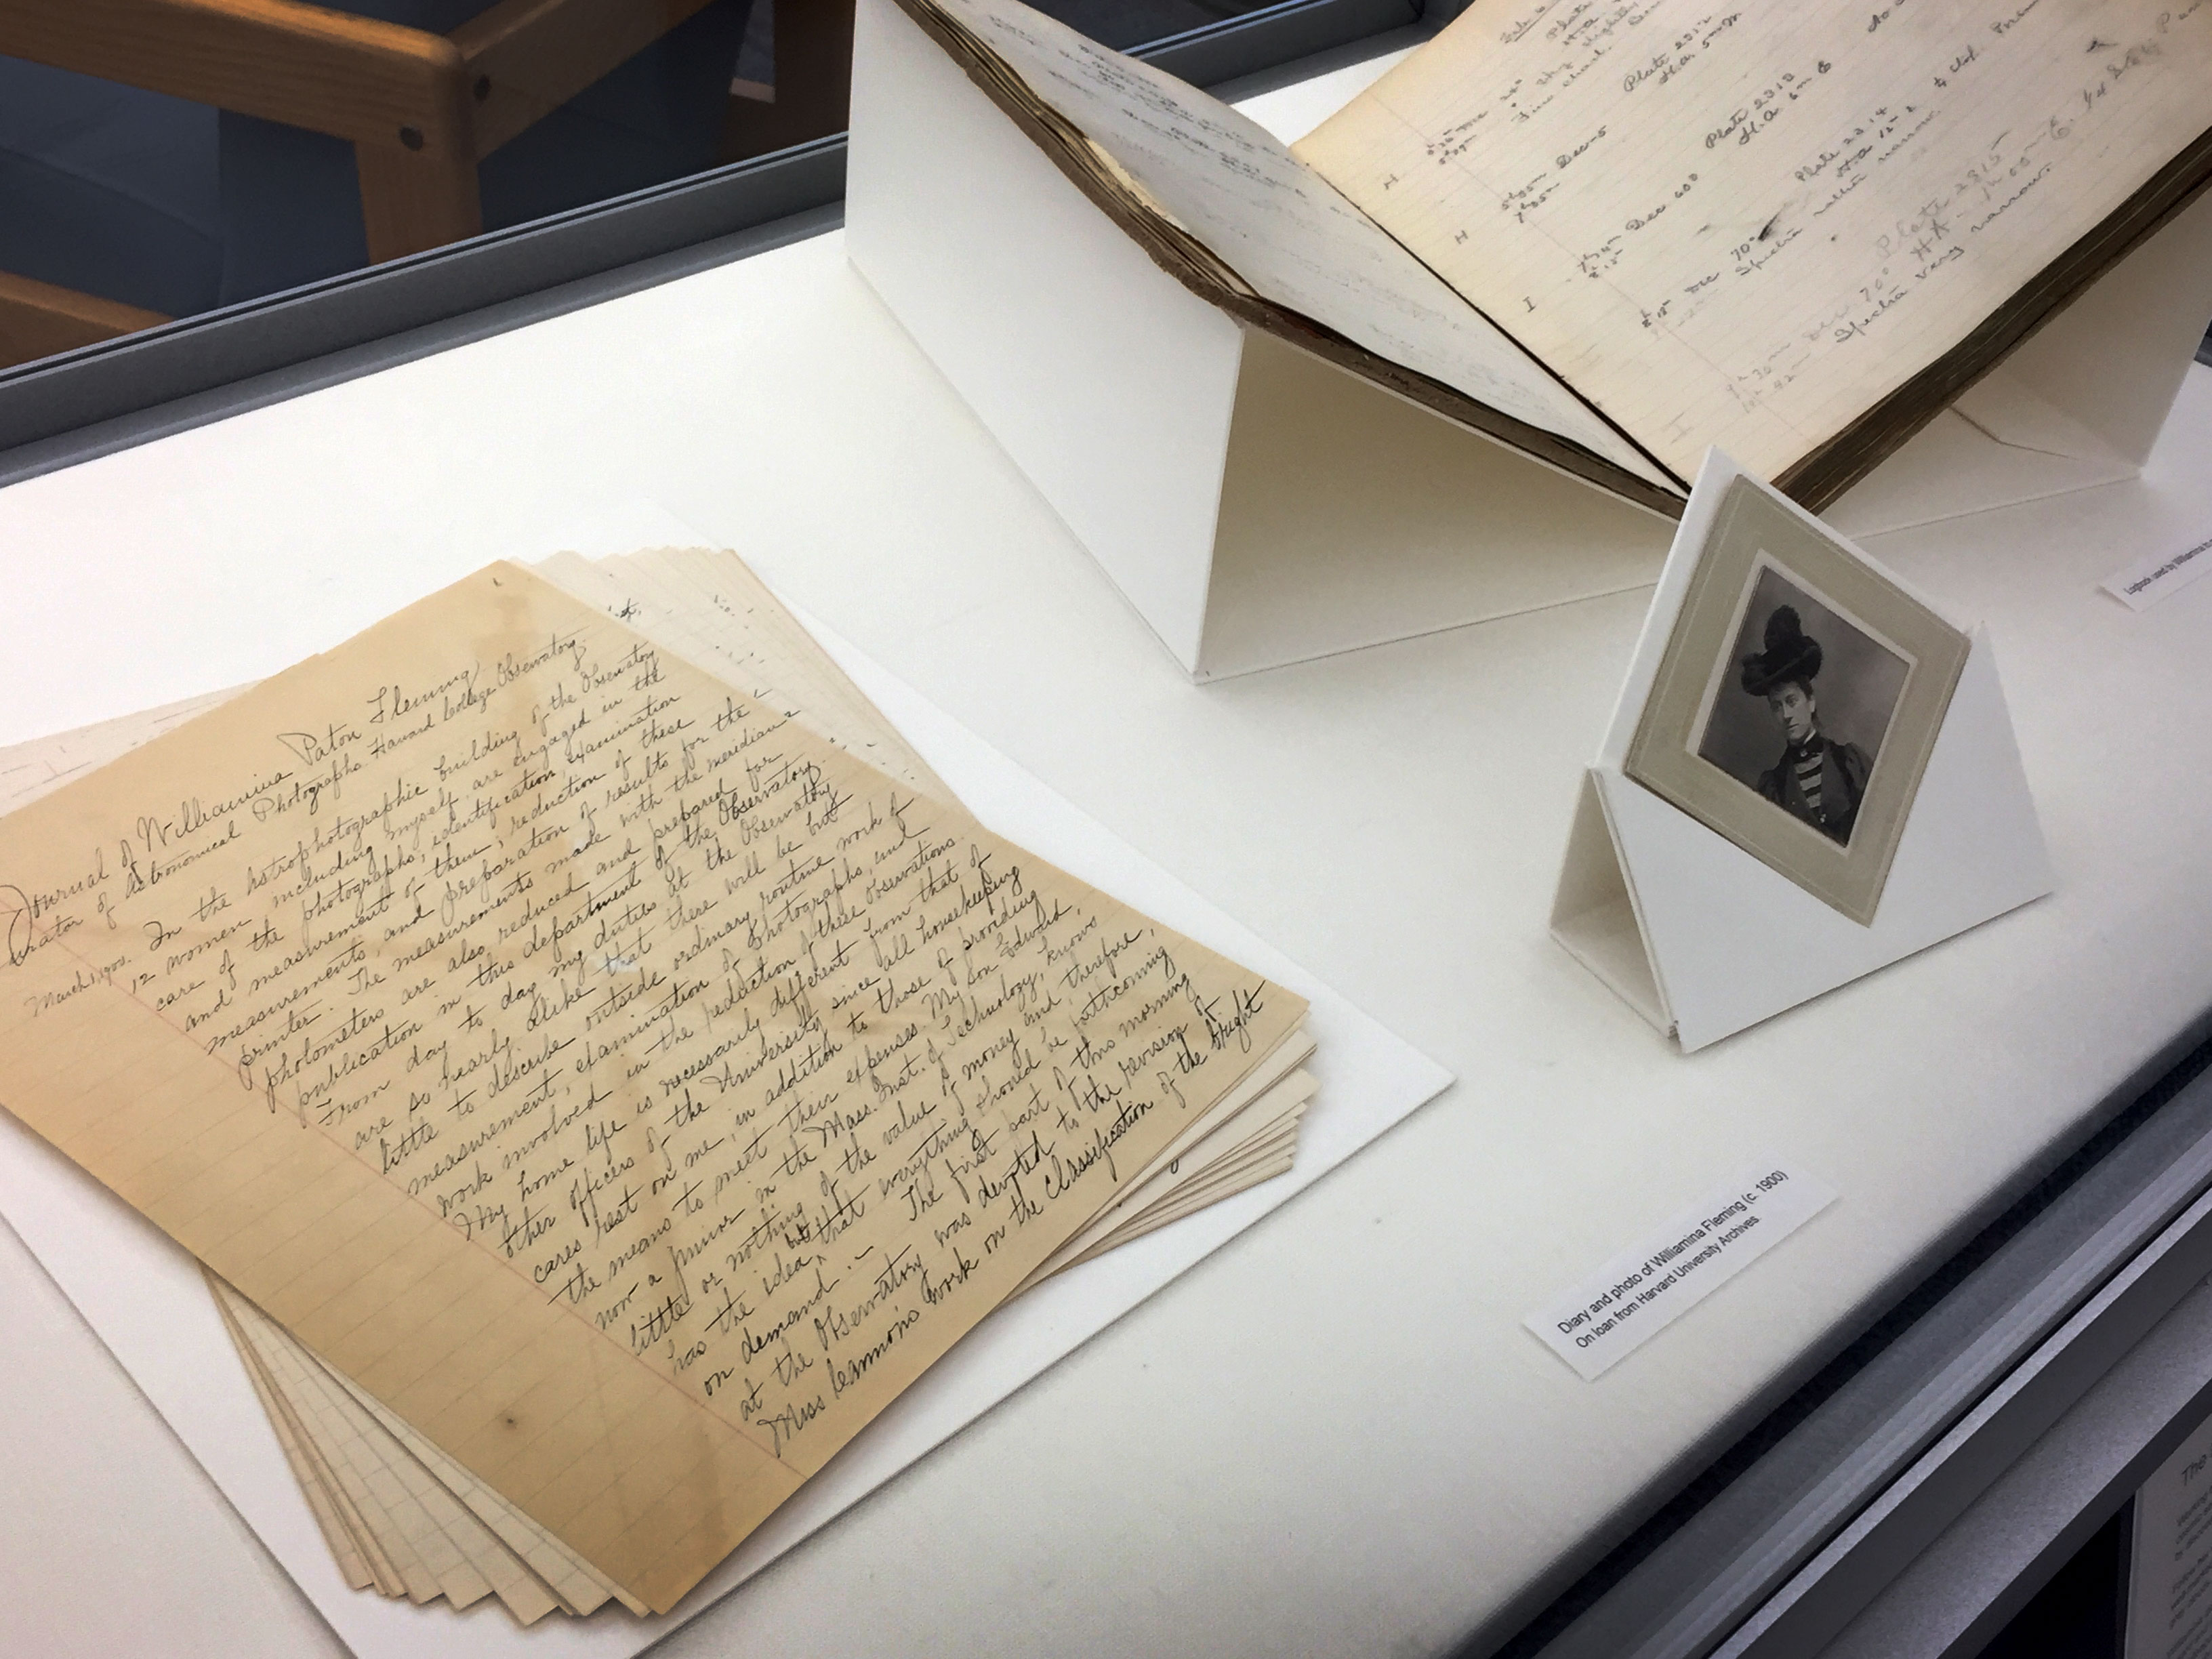 From left to right in a glass display case: yellowed pages with elegant handwritten script, a black and white portrait of Wilhelmina Fleming wearing a feathered hat; a yellowed logbook with mathematical notations in it.